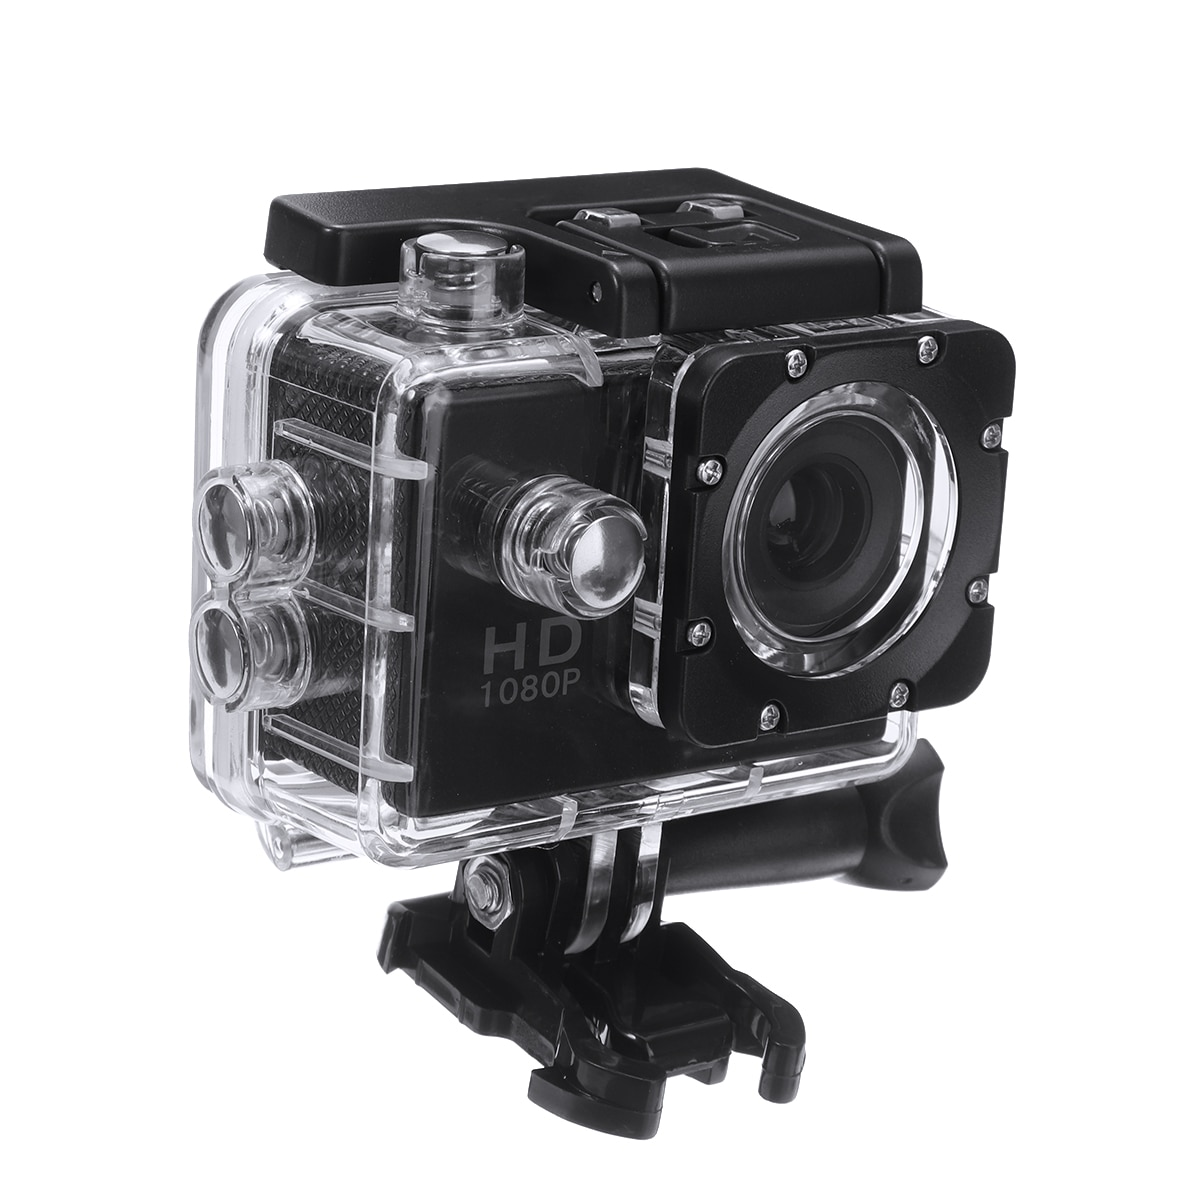 1080P Motorcycle Dash Sports Action Video Camera Full 2.0 Screen Camera 30M Waterproof Grade For Outdoor Riding Diving